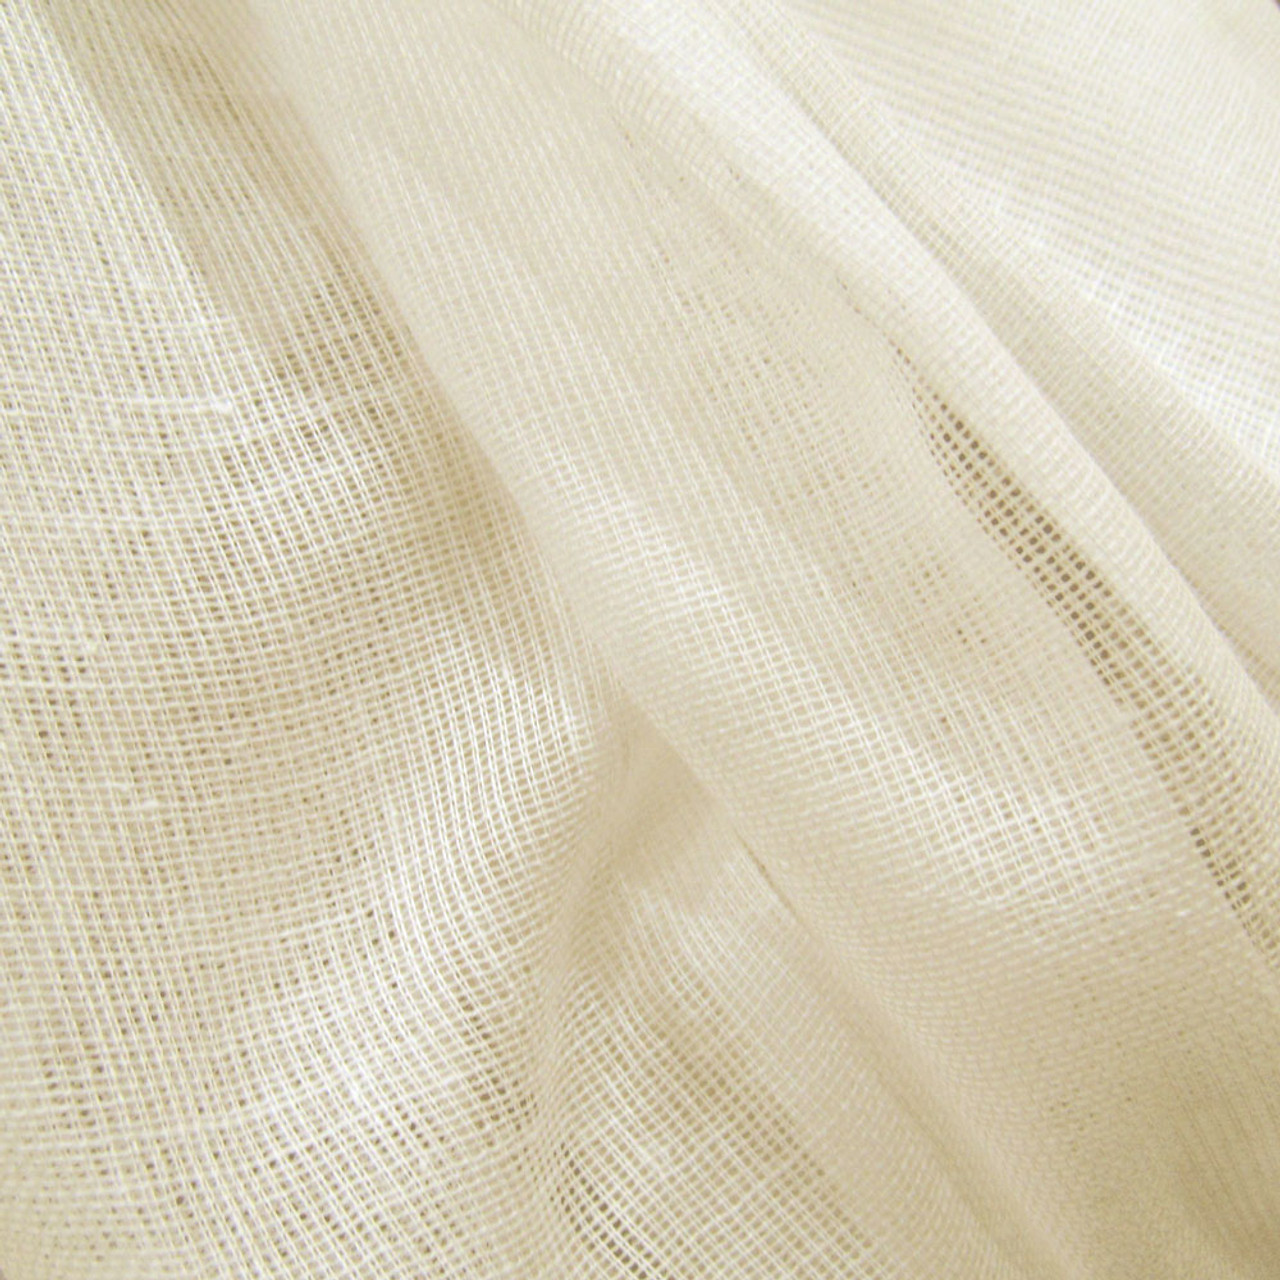 10 Yards Unbleached Tobacco Cloth Cotton Fabric - Lightweight